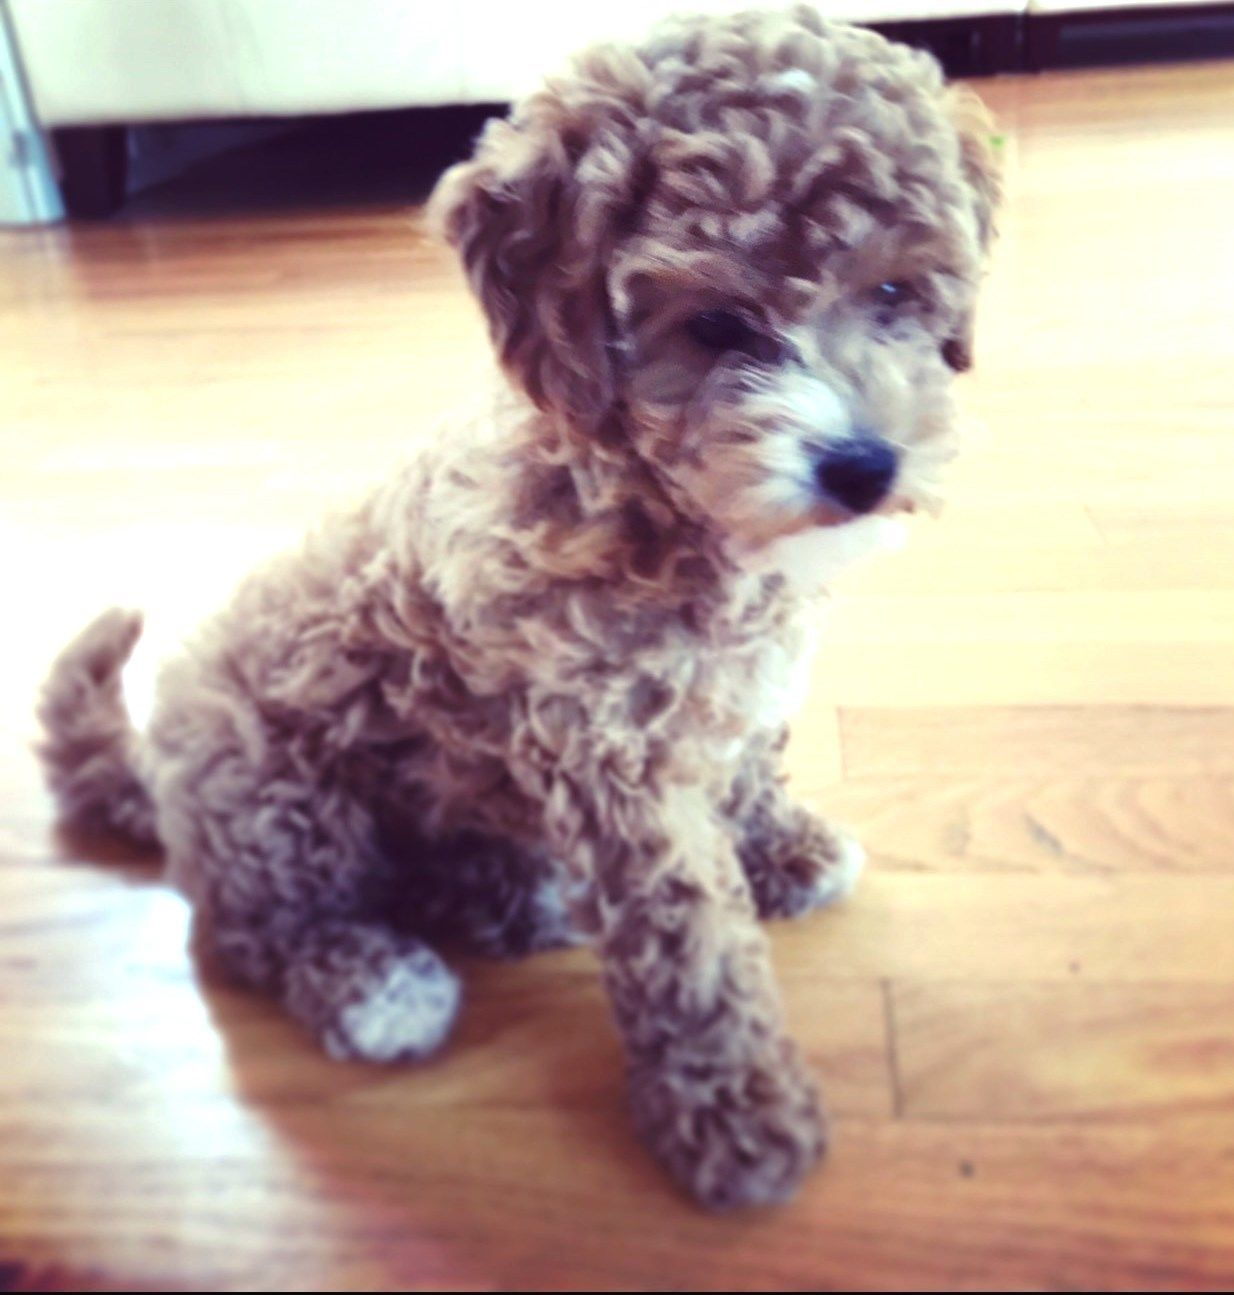 Kaia Help Needed Is An Adoptable Dog Poodle Bichon Frise